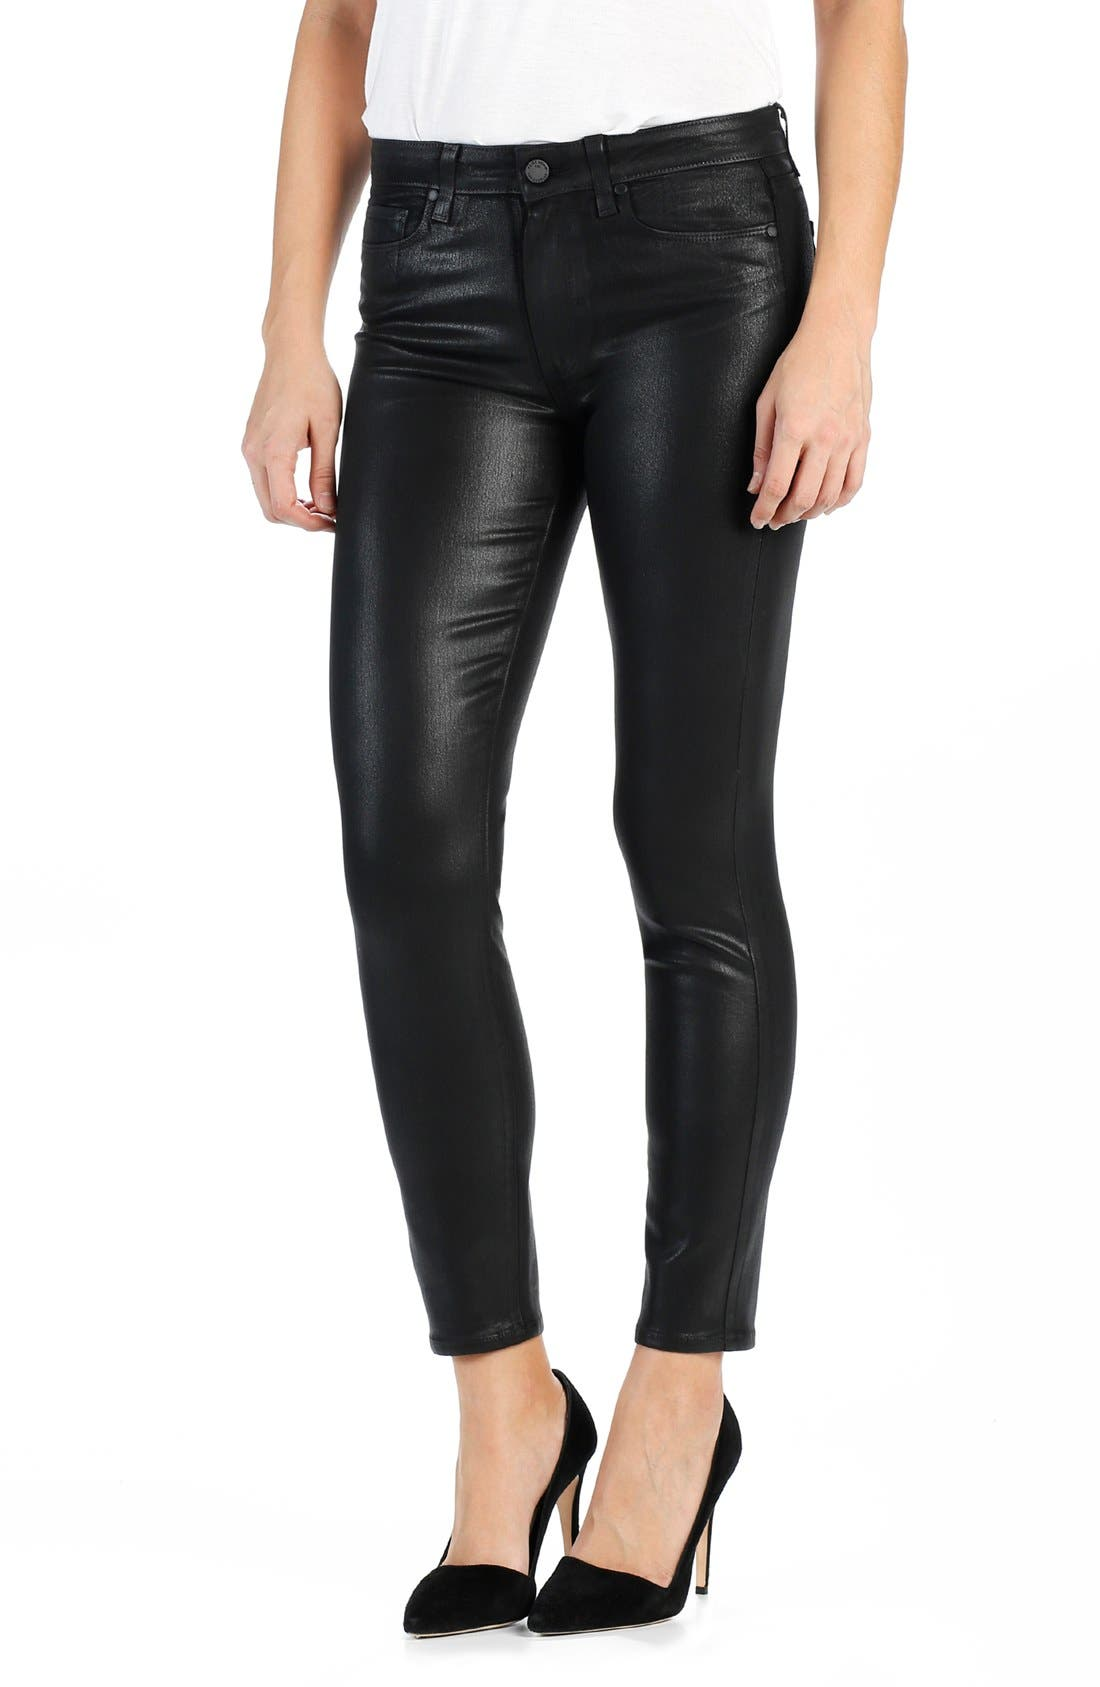 Alternate Image 1 Selected - PAIGE Transcend - Hoxton High Waist Ankle Skinny Jeans (Luxe Black Coated)